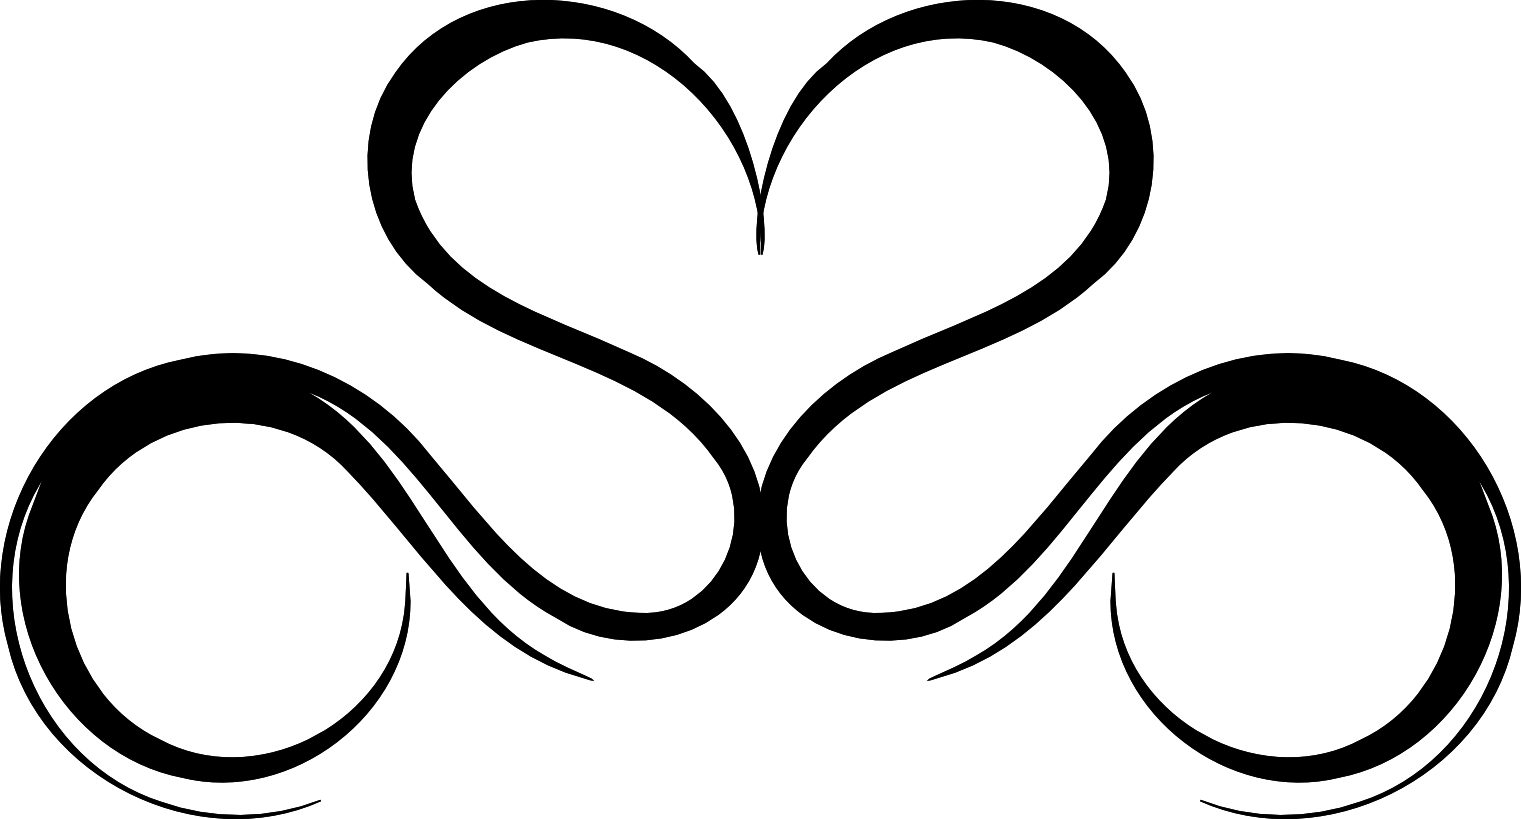 Free Drawings Of Easy Hearts Download Free Clip Art Free